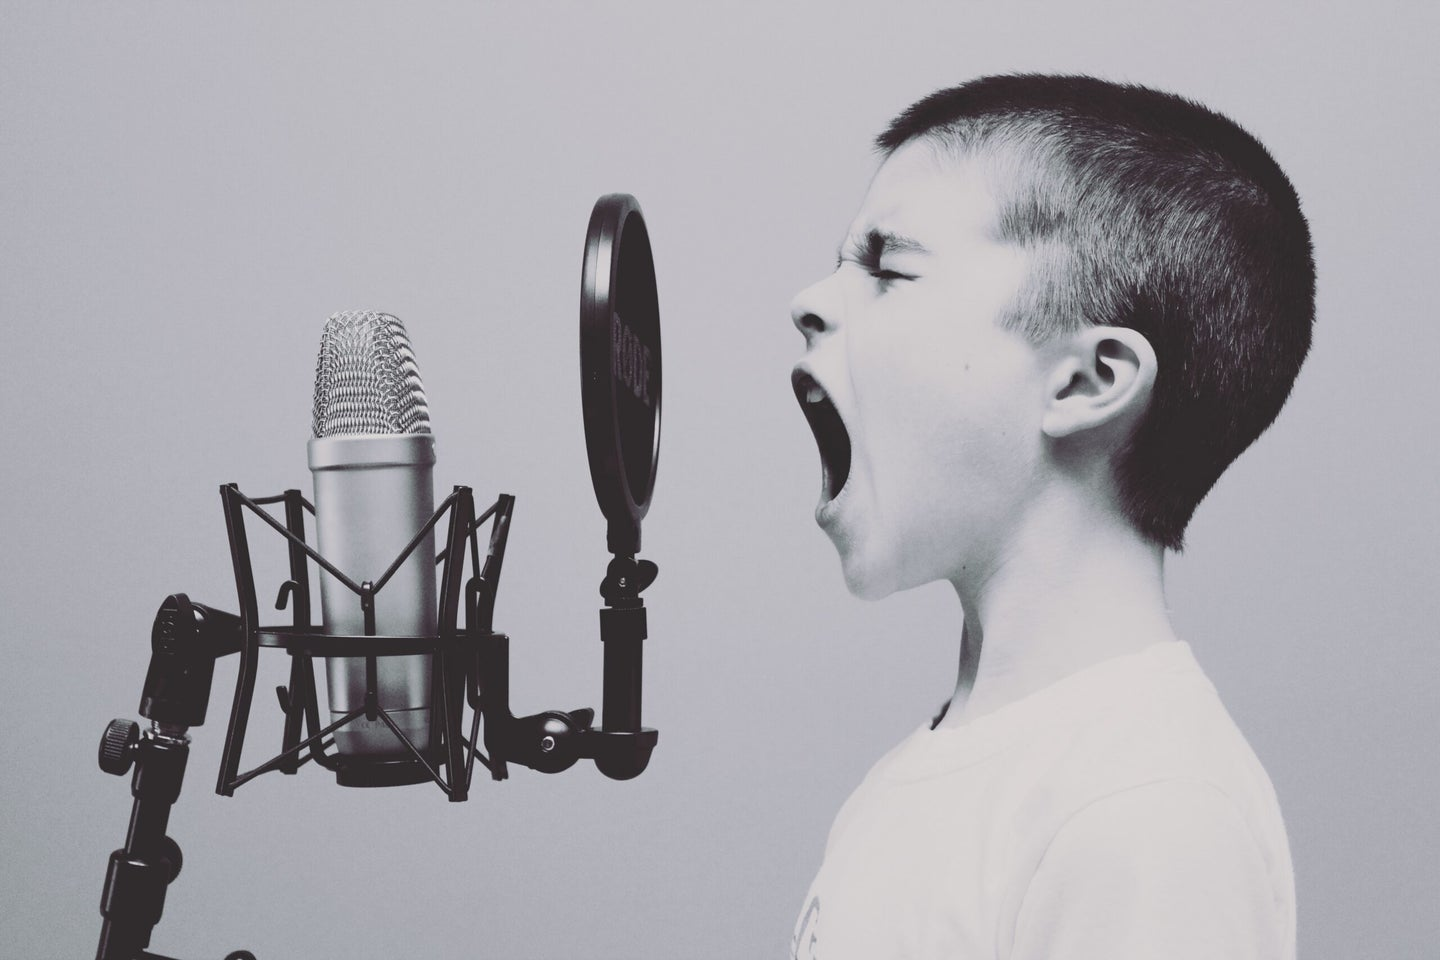 boy screaming into microphone